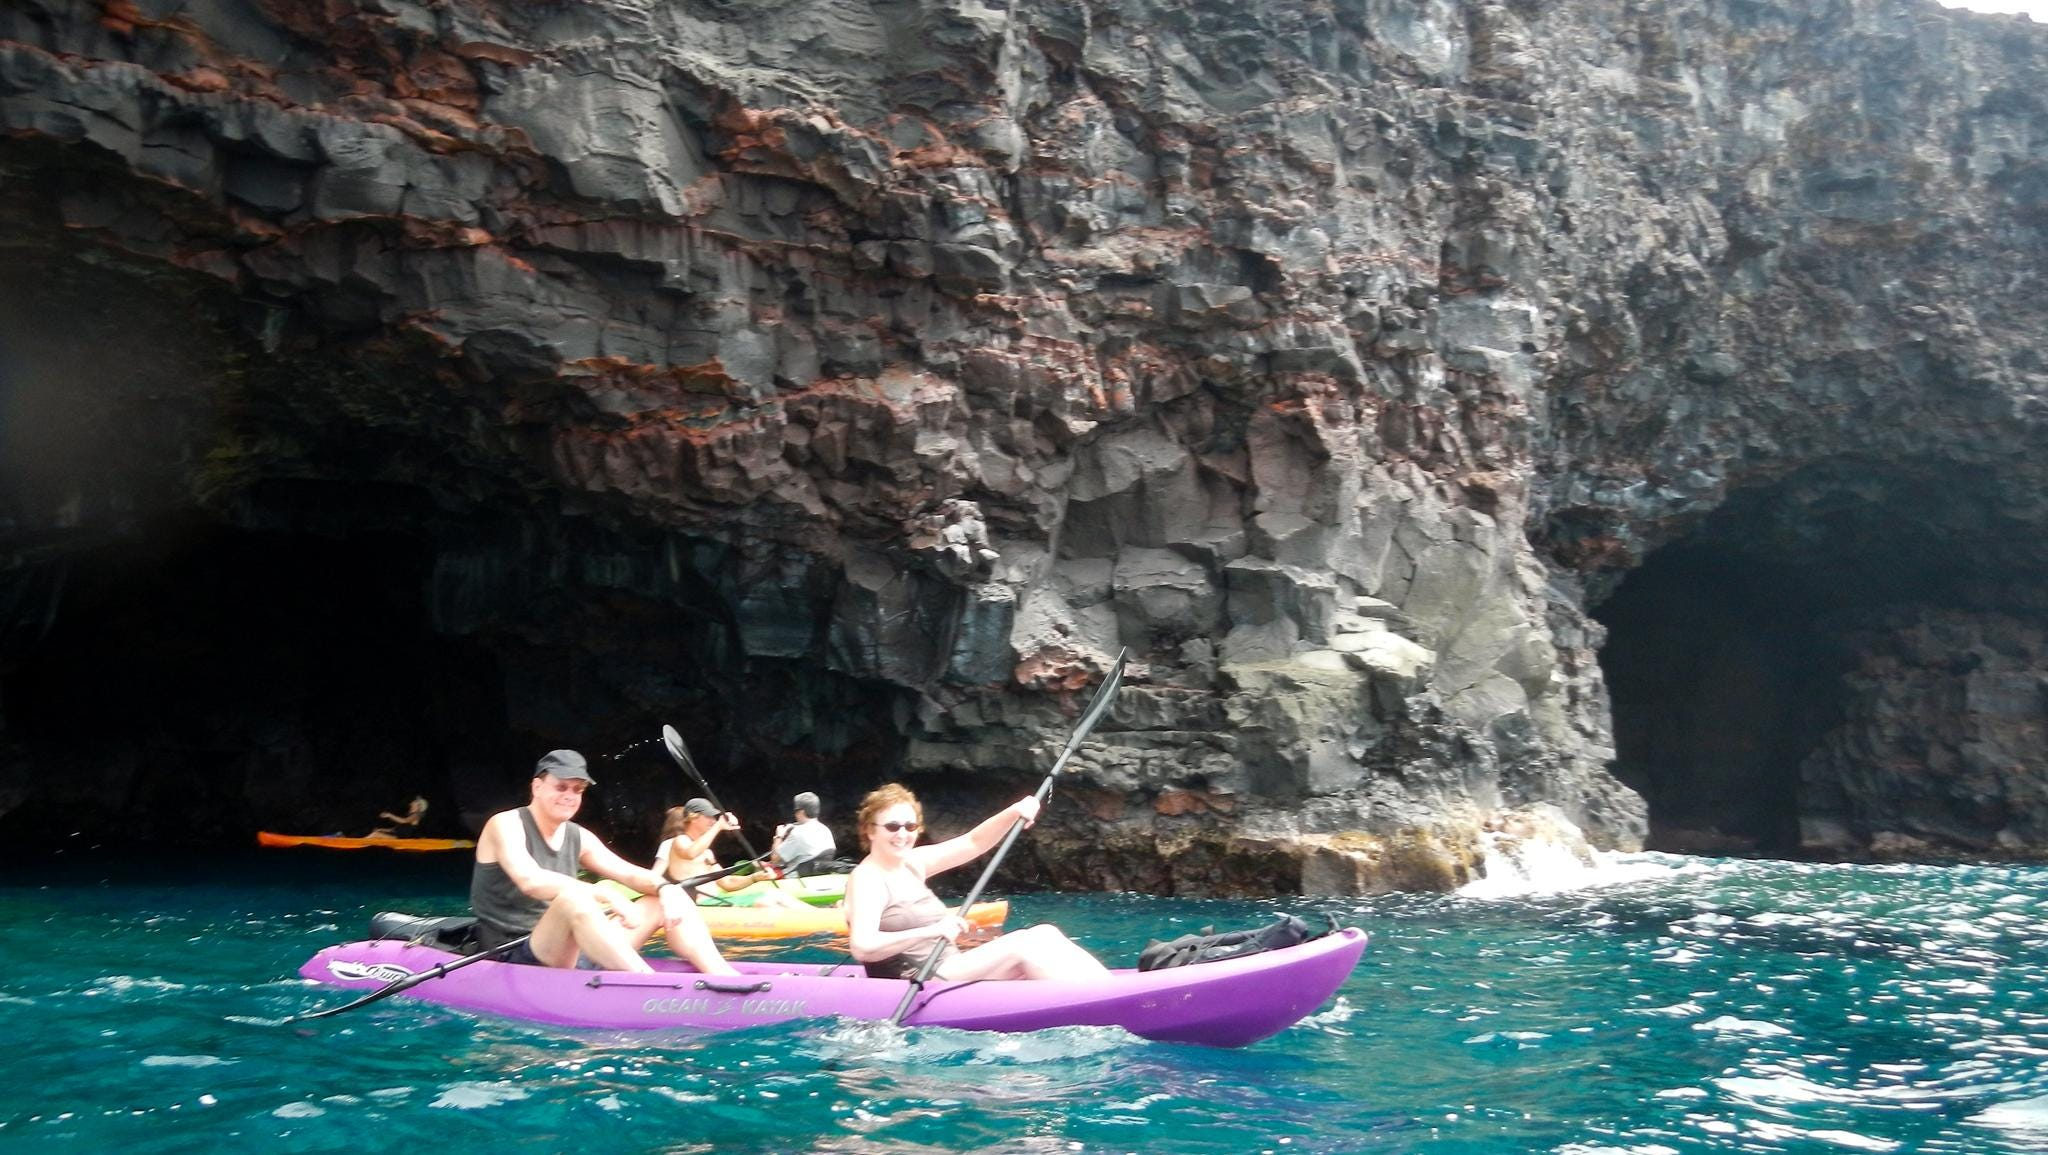 Hawaiian itineraries provide opportunities to kayak along the rugged volcanic coastline of Kona, which has a number of sea caves and interesting lava formations.